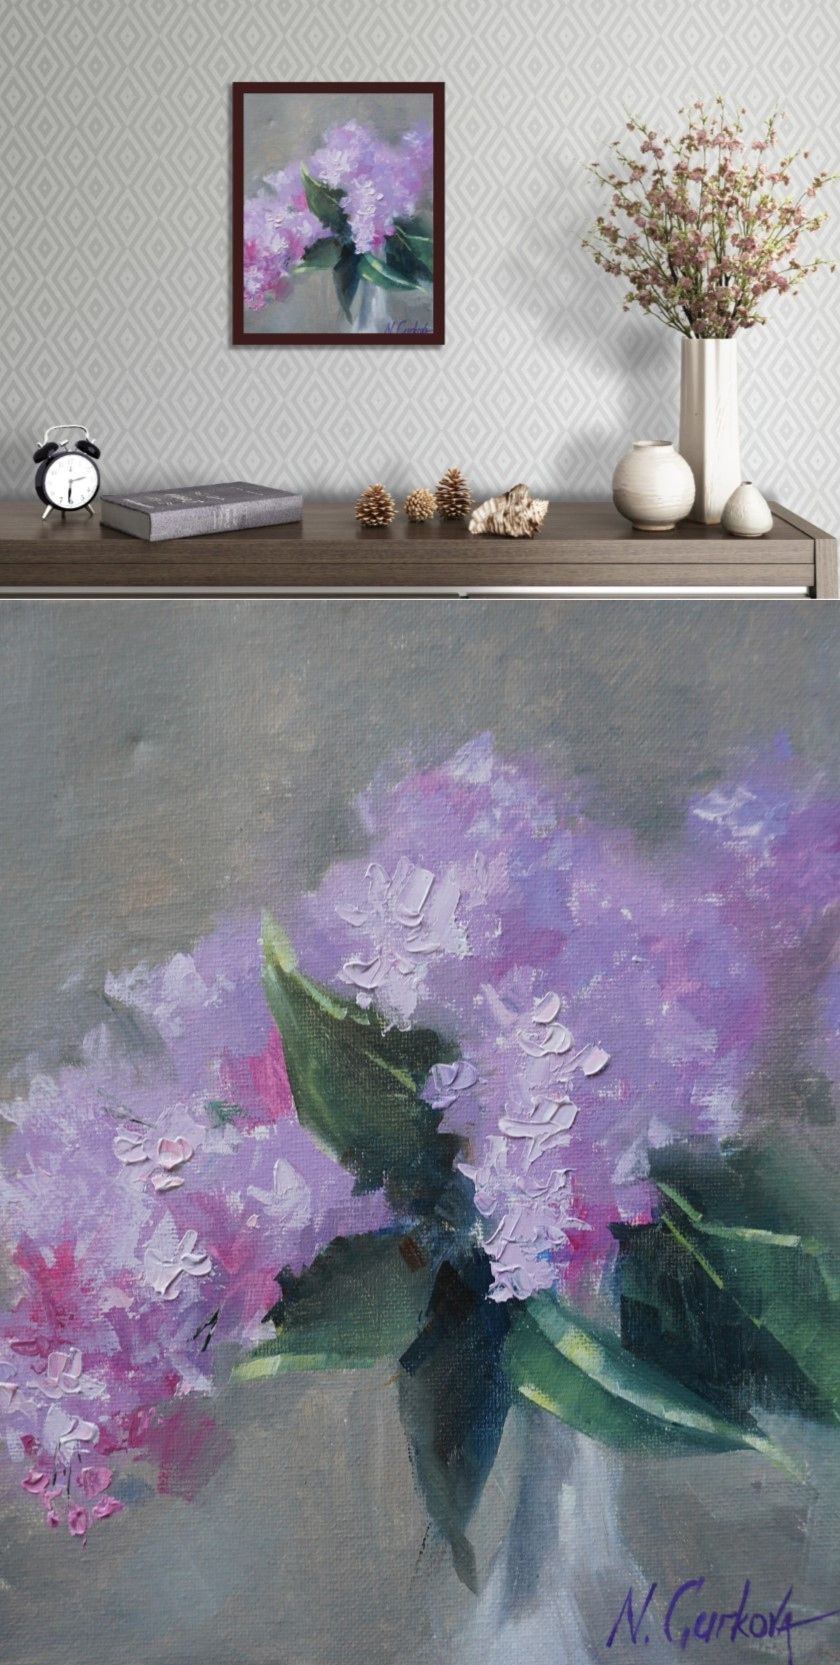 Lilac Flower Original Oil Painting Small Purple Canvas Wall Etsy Lilac Painting Flower Painting Canvas Original Oil Painting